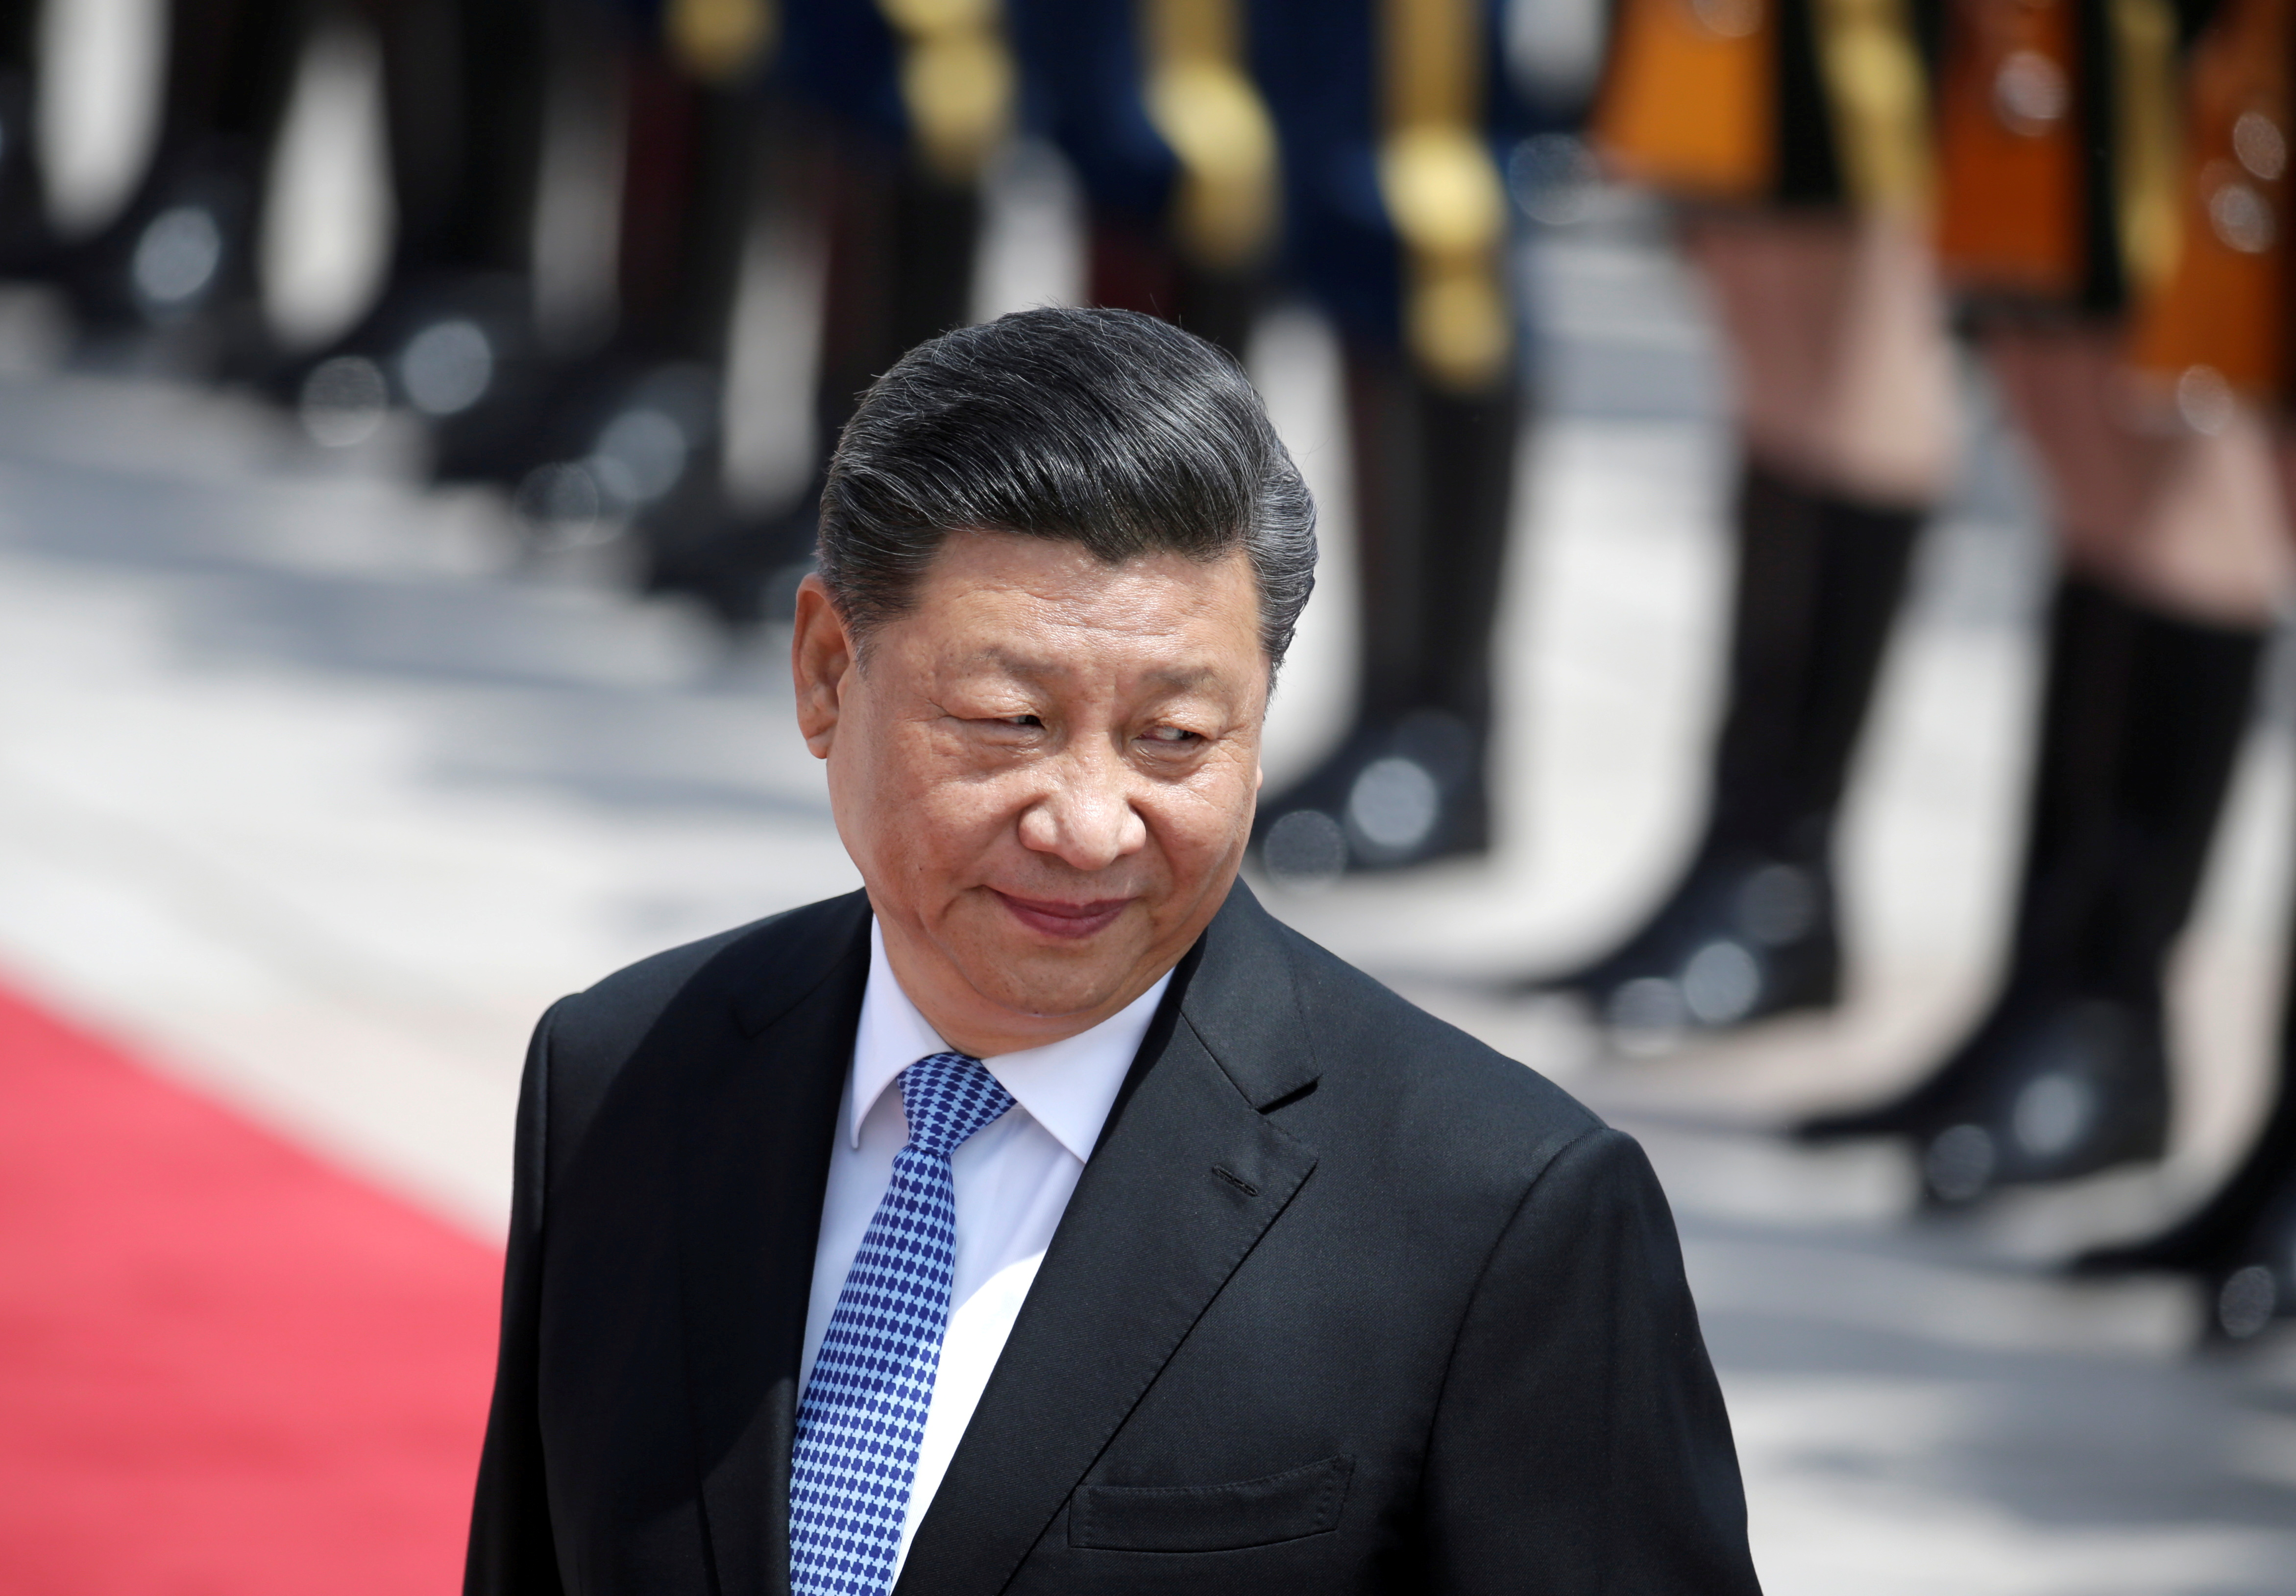 FILE PHOTO: Chinese President Xi Jinping attends a welcoming ceremony for Greek President Prokopis Pavlopoulos outside the Great Hall of the People, in Beijing, China May 14, 2019. REUTERS/Jason Lee/File Photo